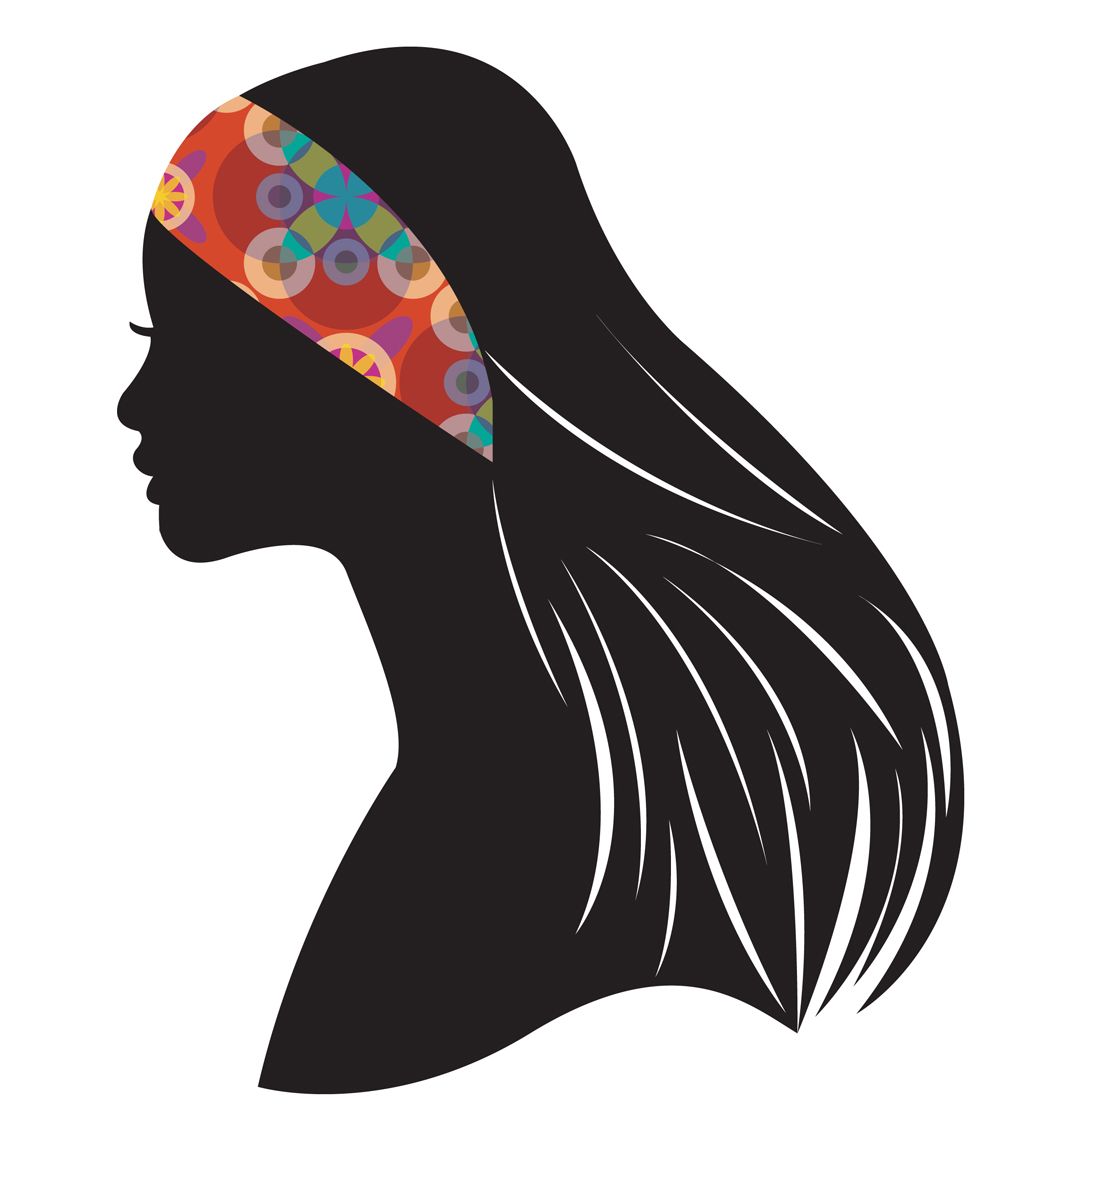 Bbt Style To Showcase Chic Hair Accessories At Gbk S Styling Lounge For 2013 New York Fashion Week